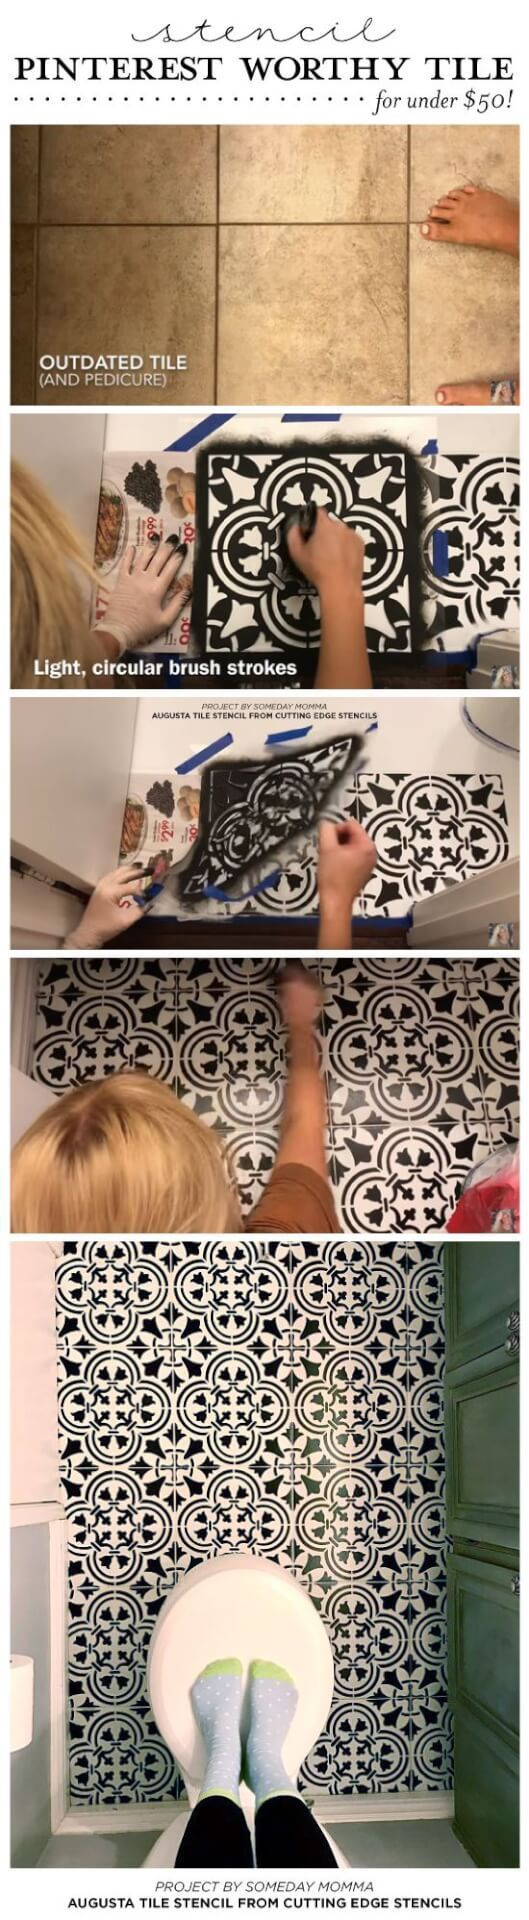 Are An Easy Way To Perk Up An Old Floor